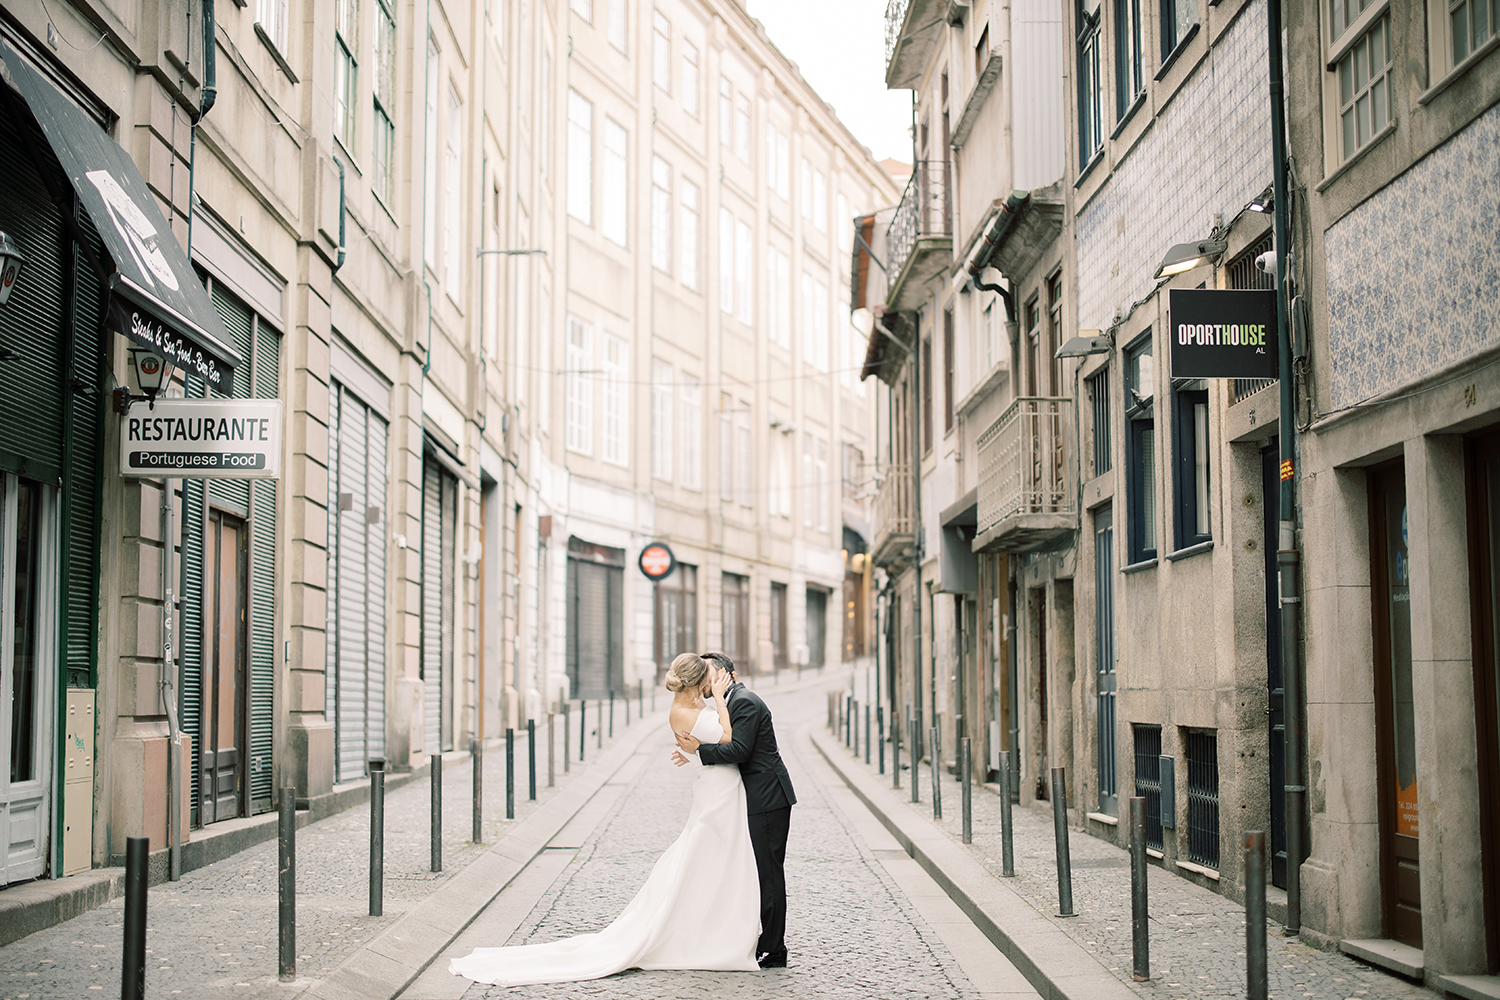 Wedding portraits in the streets of Porto